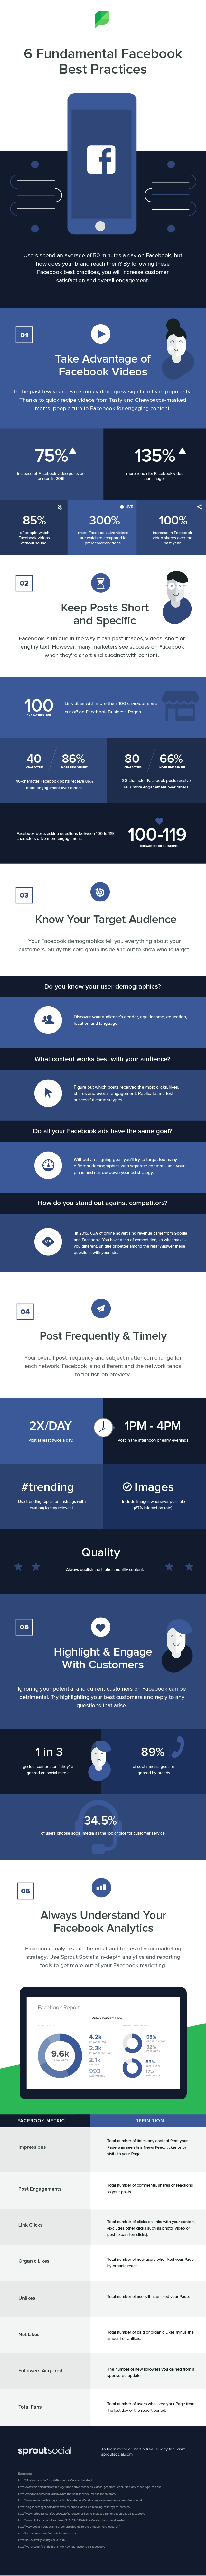 6 fundamental facebook best practices infographic